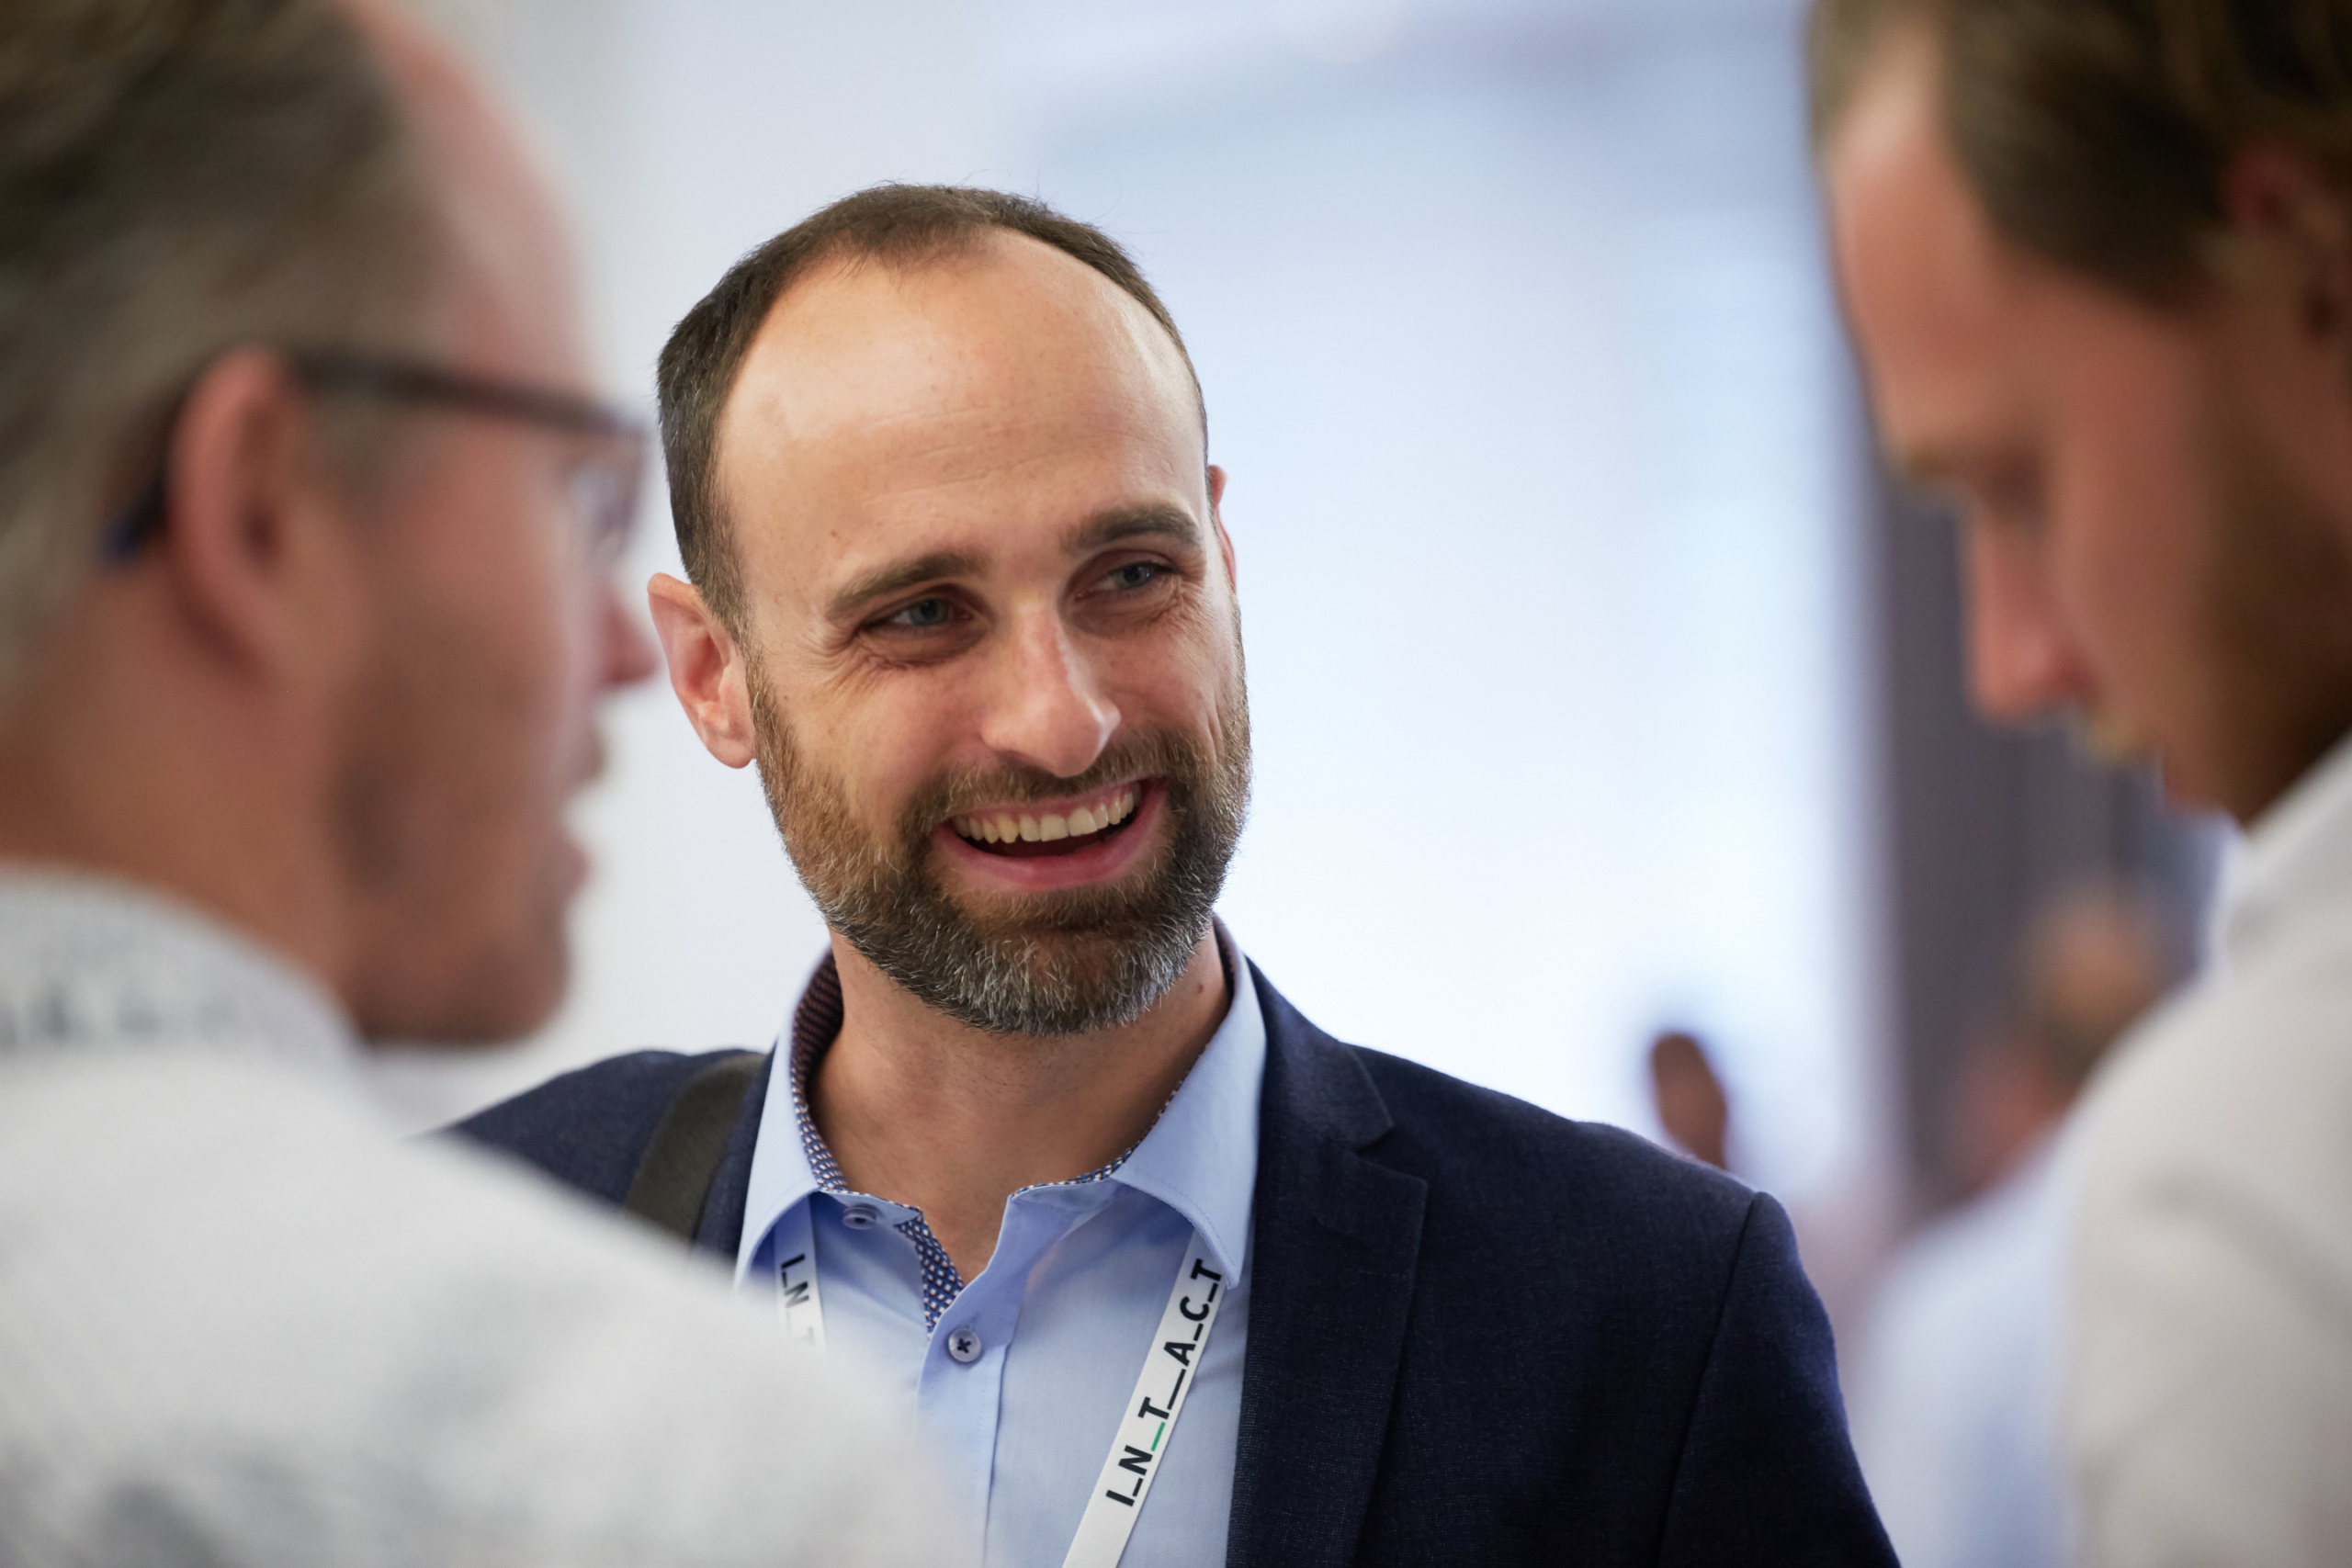 Intact Summit 2019 in Graz — Armin Prugmaier, Head of Project Managment at Intact